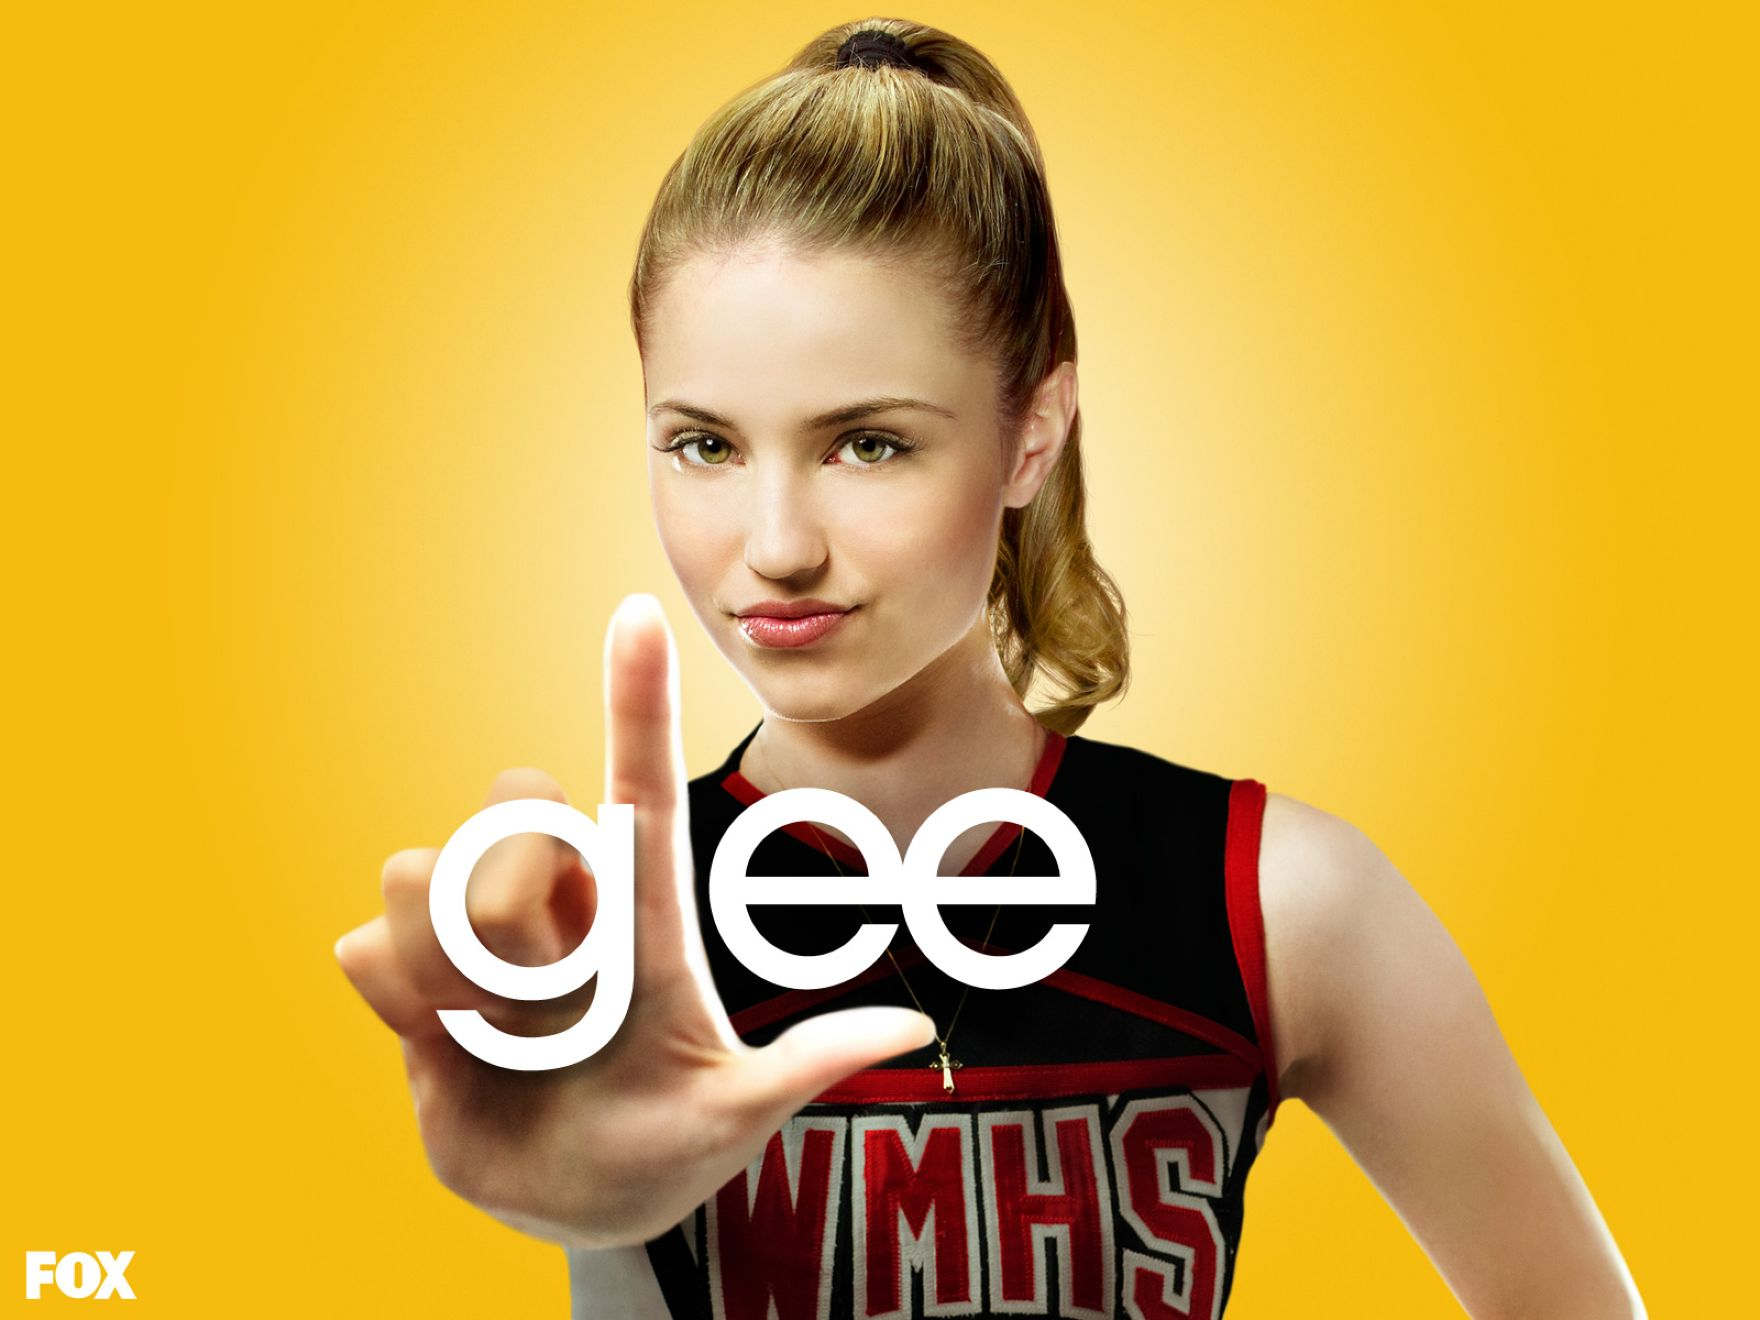 Download free HD Dianna Agron In Glee Normal Wallpaper, image